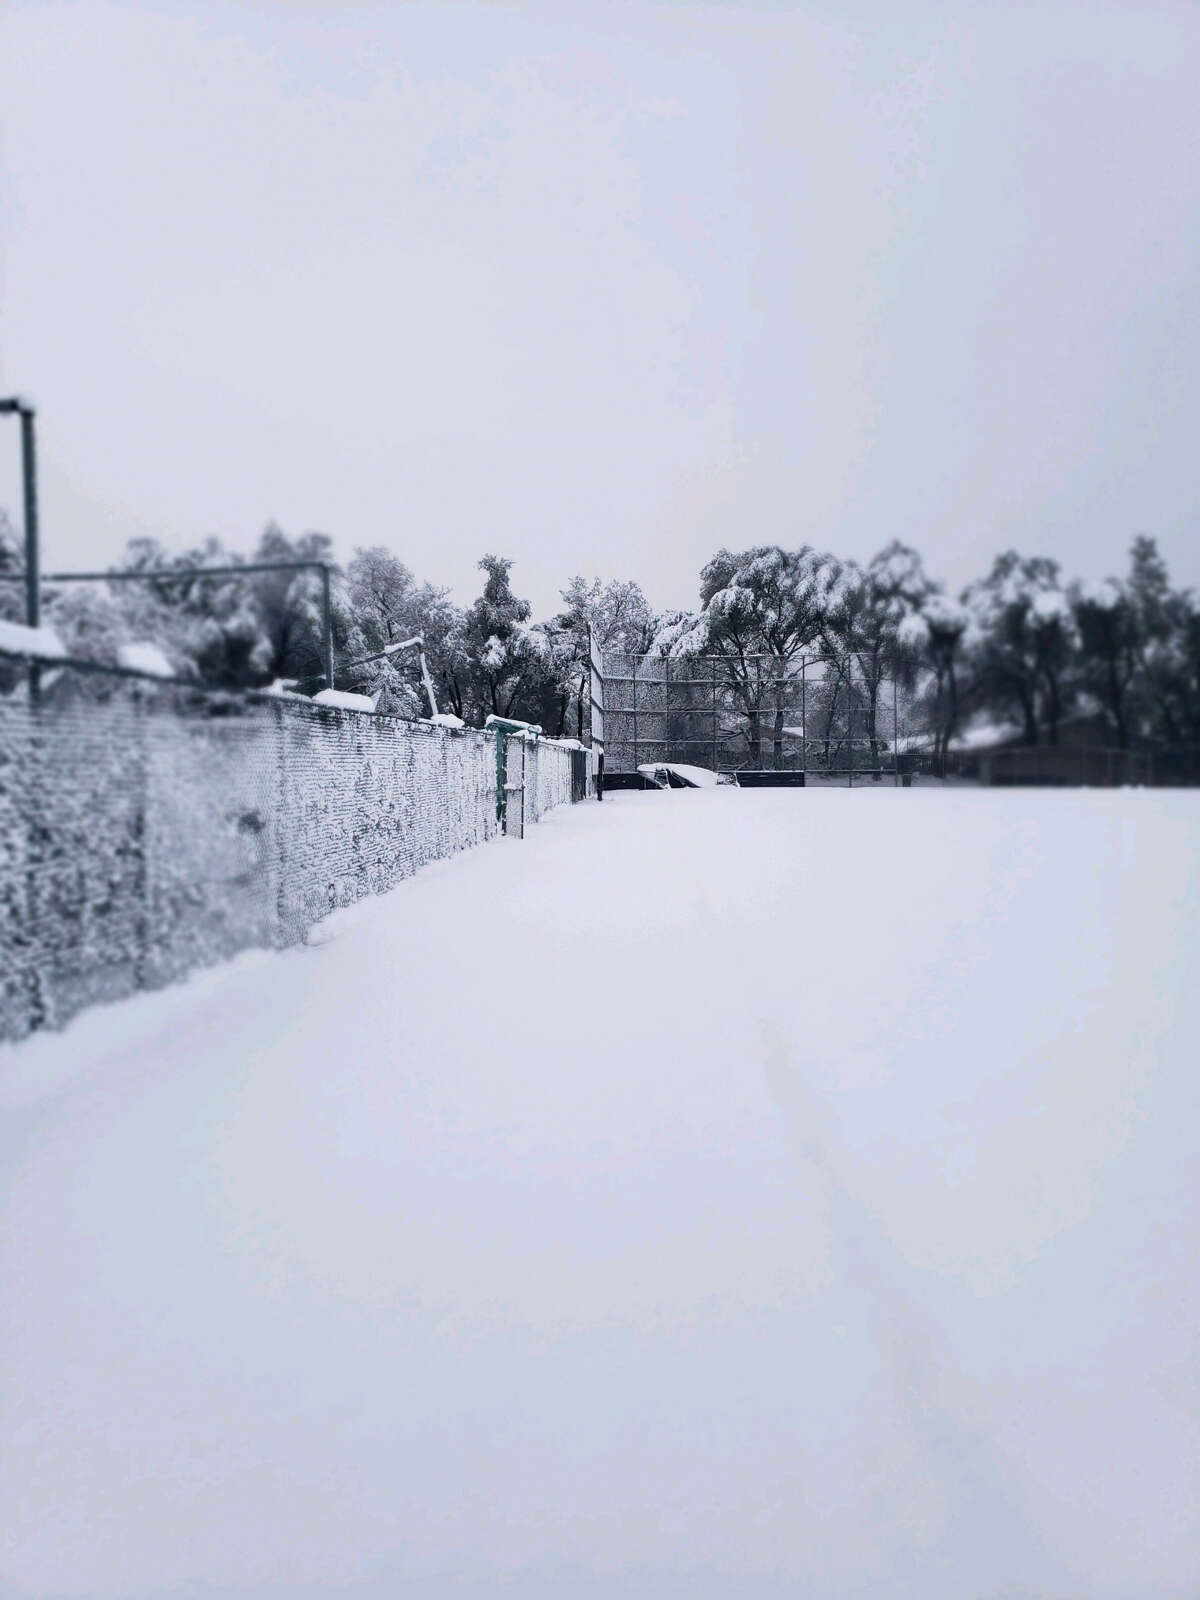 Inches of snow pile up at Enterprise High School in Redding following an overnight storm on February 13th.